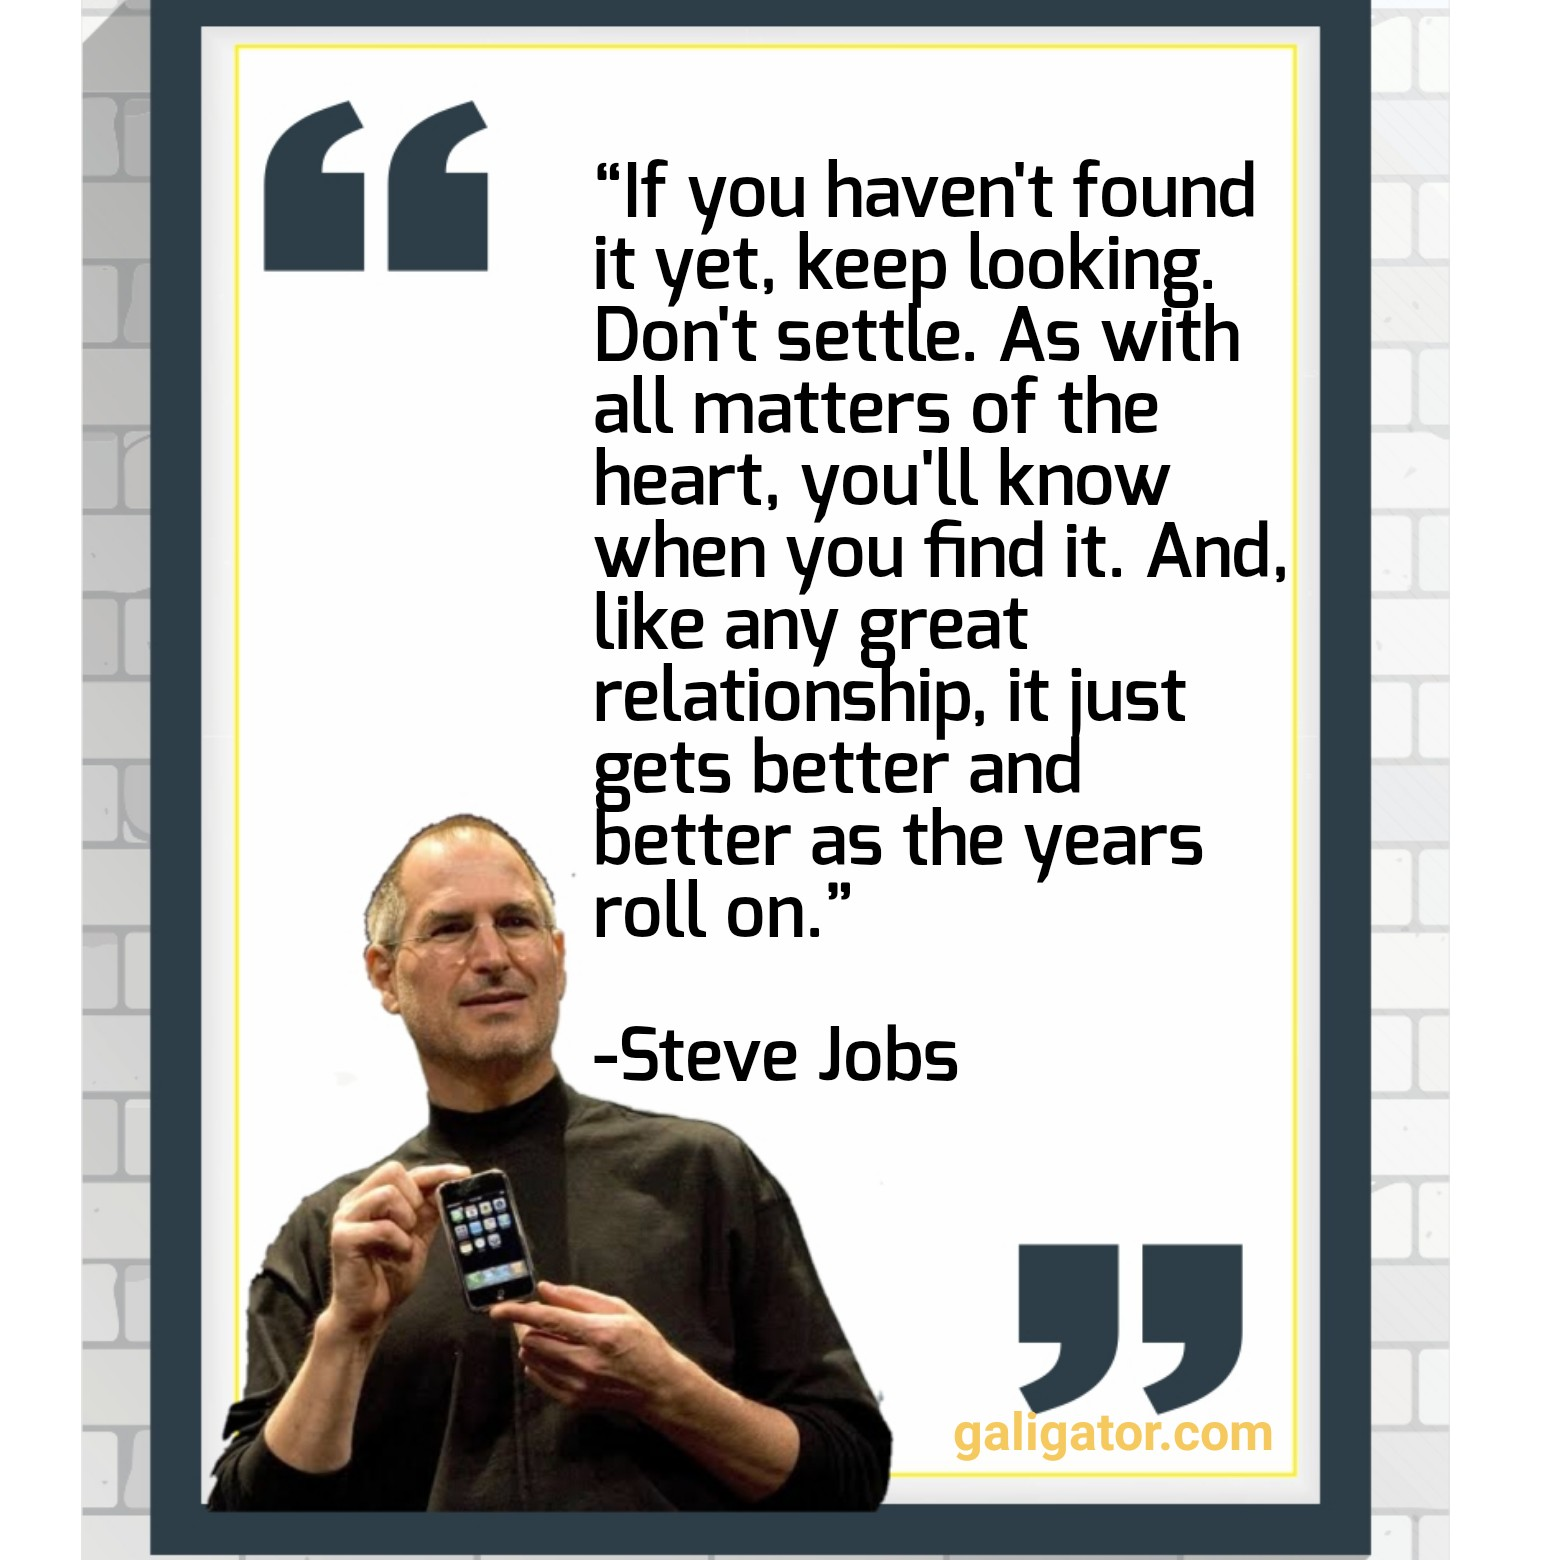 iphone quotes , self motivation motivation iphone wallpaper quotes , iphone wallpaper quotes,marketing quotes steve jobs,steve jobs quotes in english ,leadership steve jobs quotes ,steve jobs quote overnight success,teamwork steve jobs quotes on leadership ,steve jobs dogma quote ,steve jobs innovation quote,steve jobs death quote,steve jobs simplicity quote,steve jobs quotes your time is limited ,20 most inspirational quotes by steve jobs ,steve jobs quote great things in business ,famous leadership quotes steve jobs